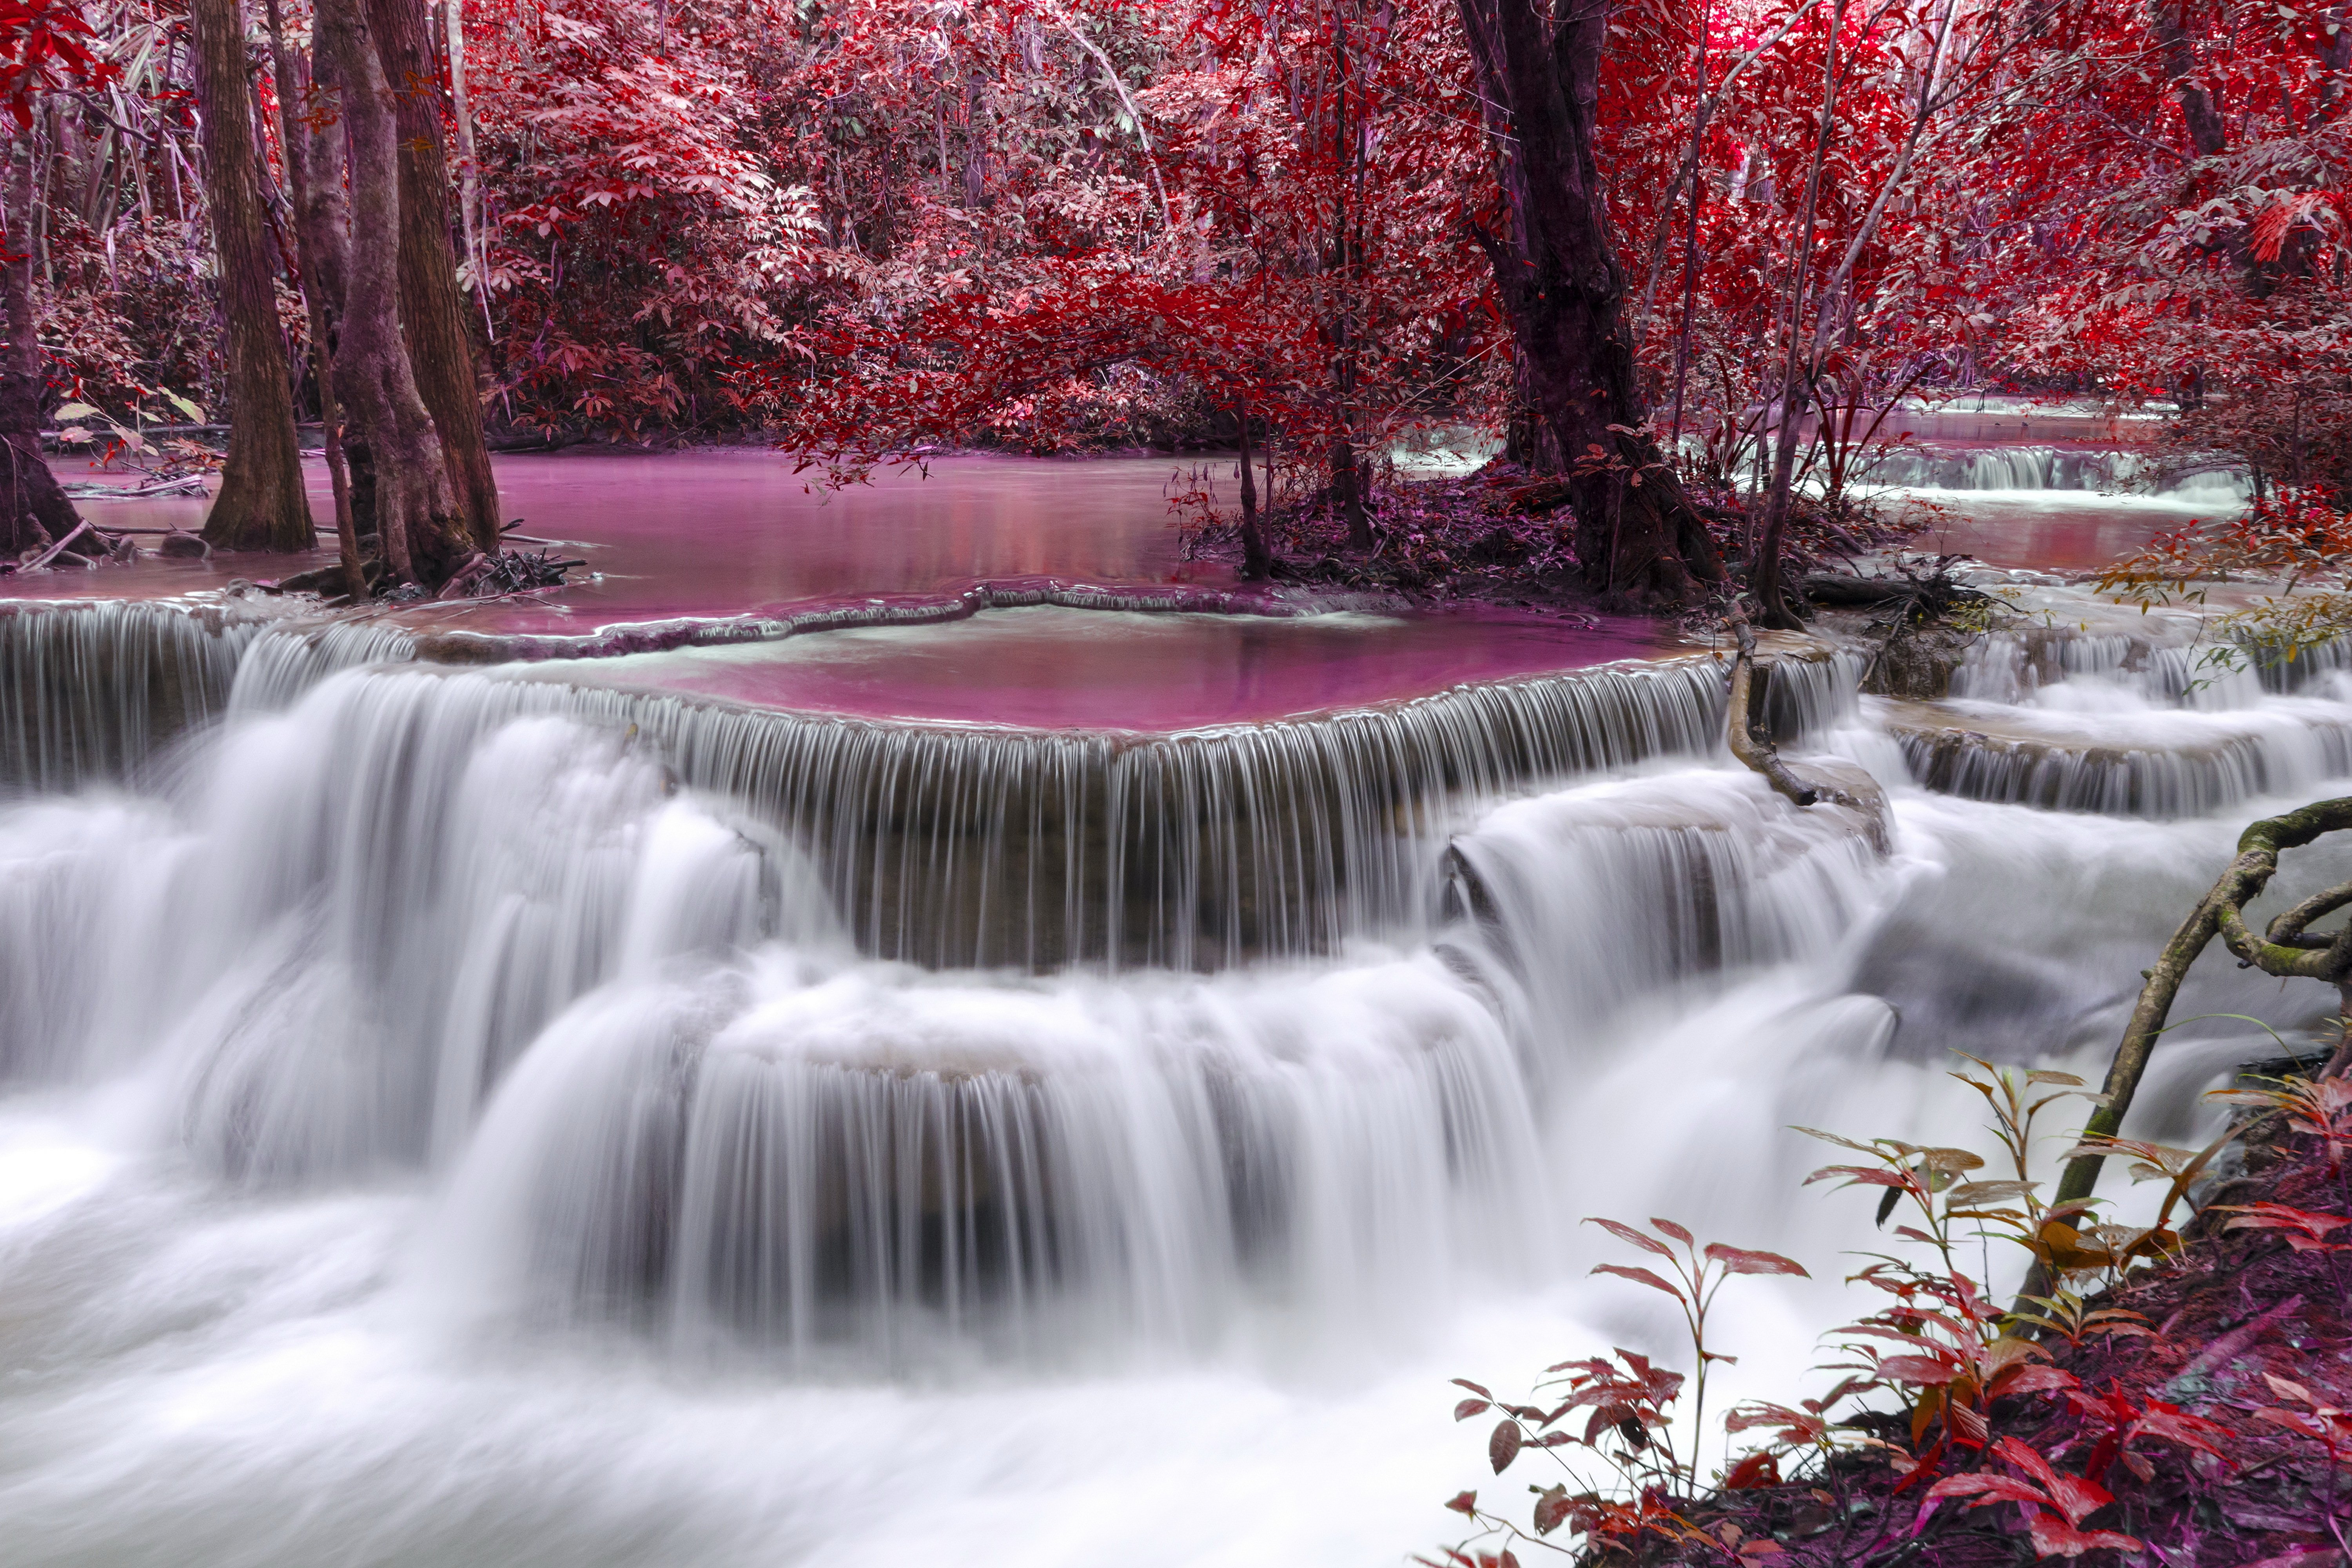 Popular Wallpaper Desktop Background Waterfall - 486f123e444aa710a2e1bb675d11a020  Collection_40483 .jpg